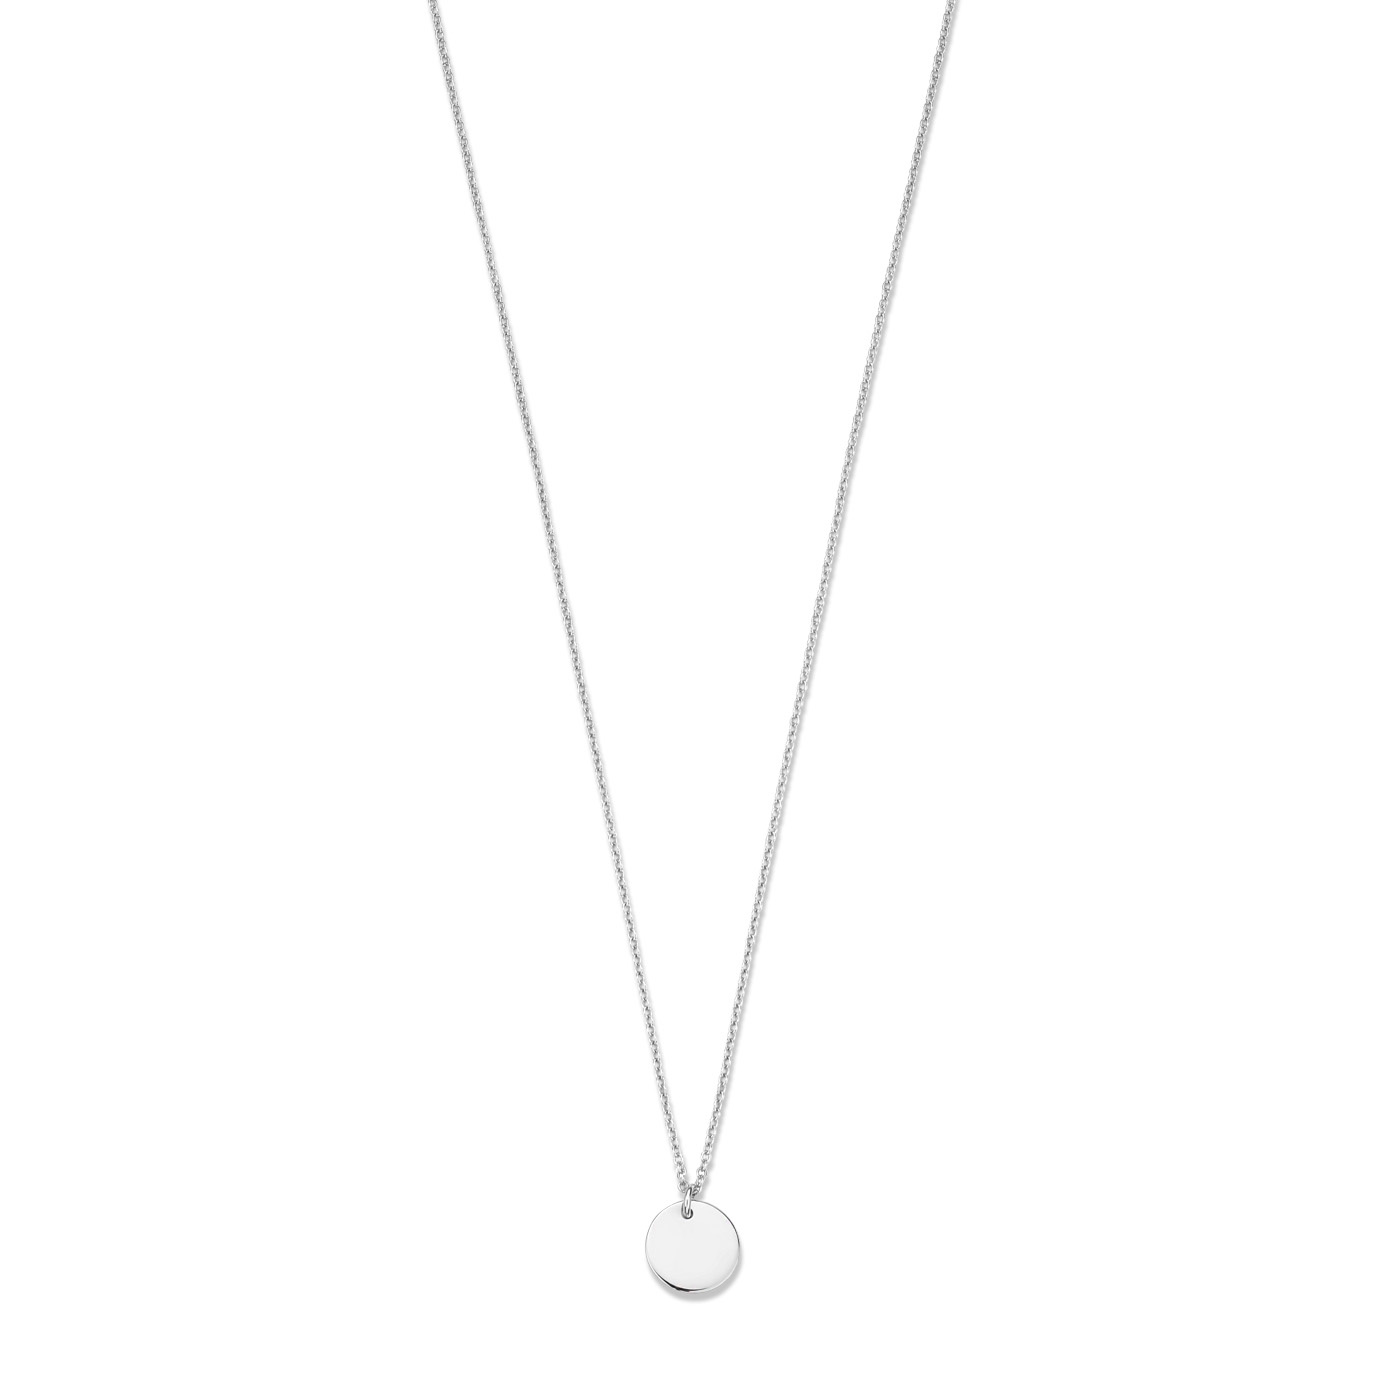 Selected Jewels Julie Belle 925 sterling zilveren ketting met muntje